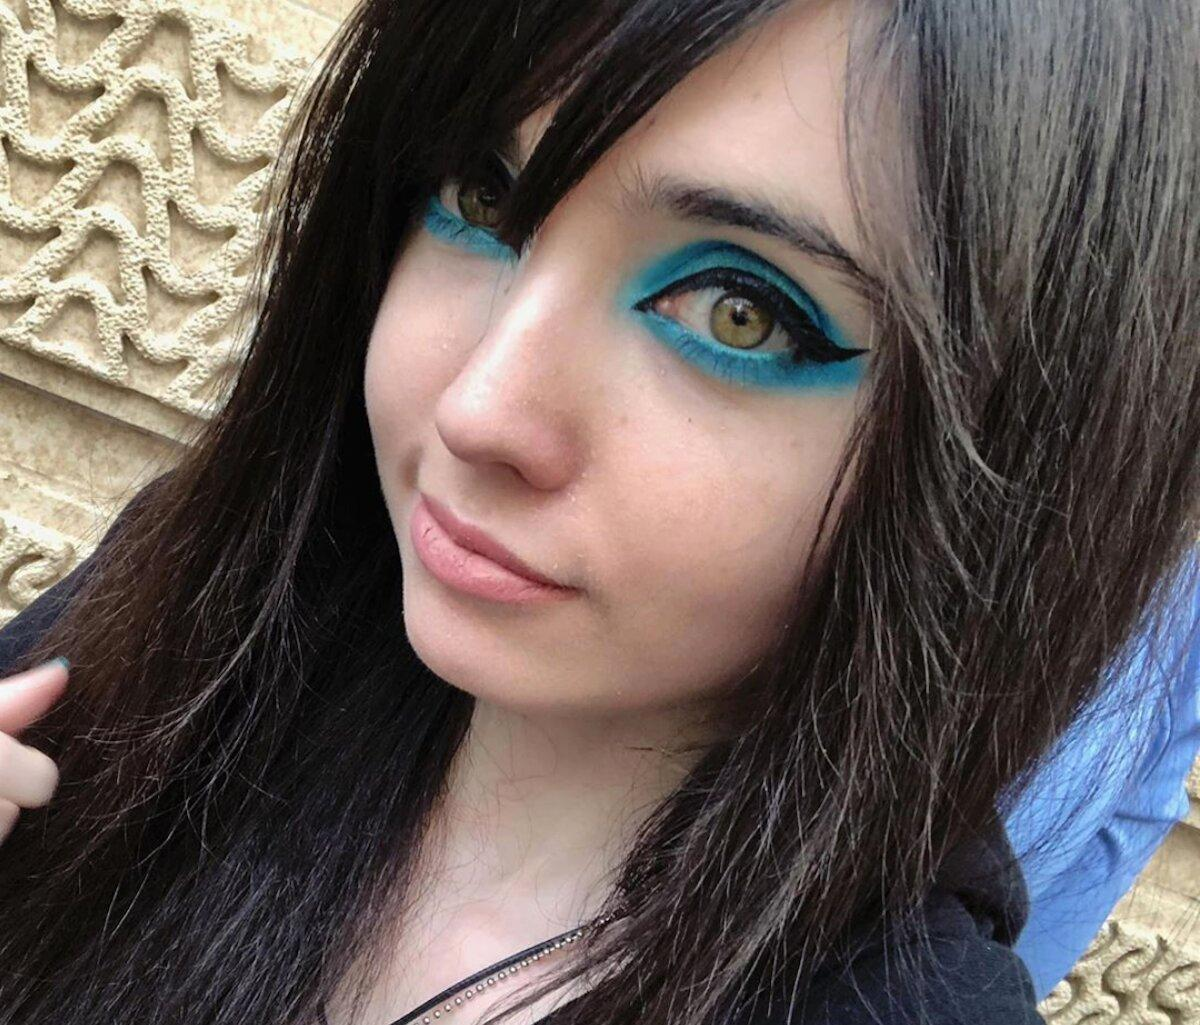 eugenia-cooney-now-1563825364372.jpg